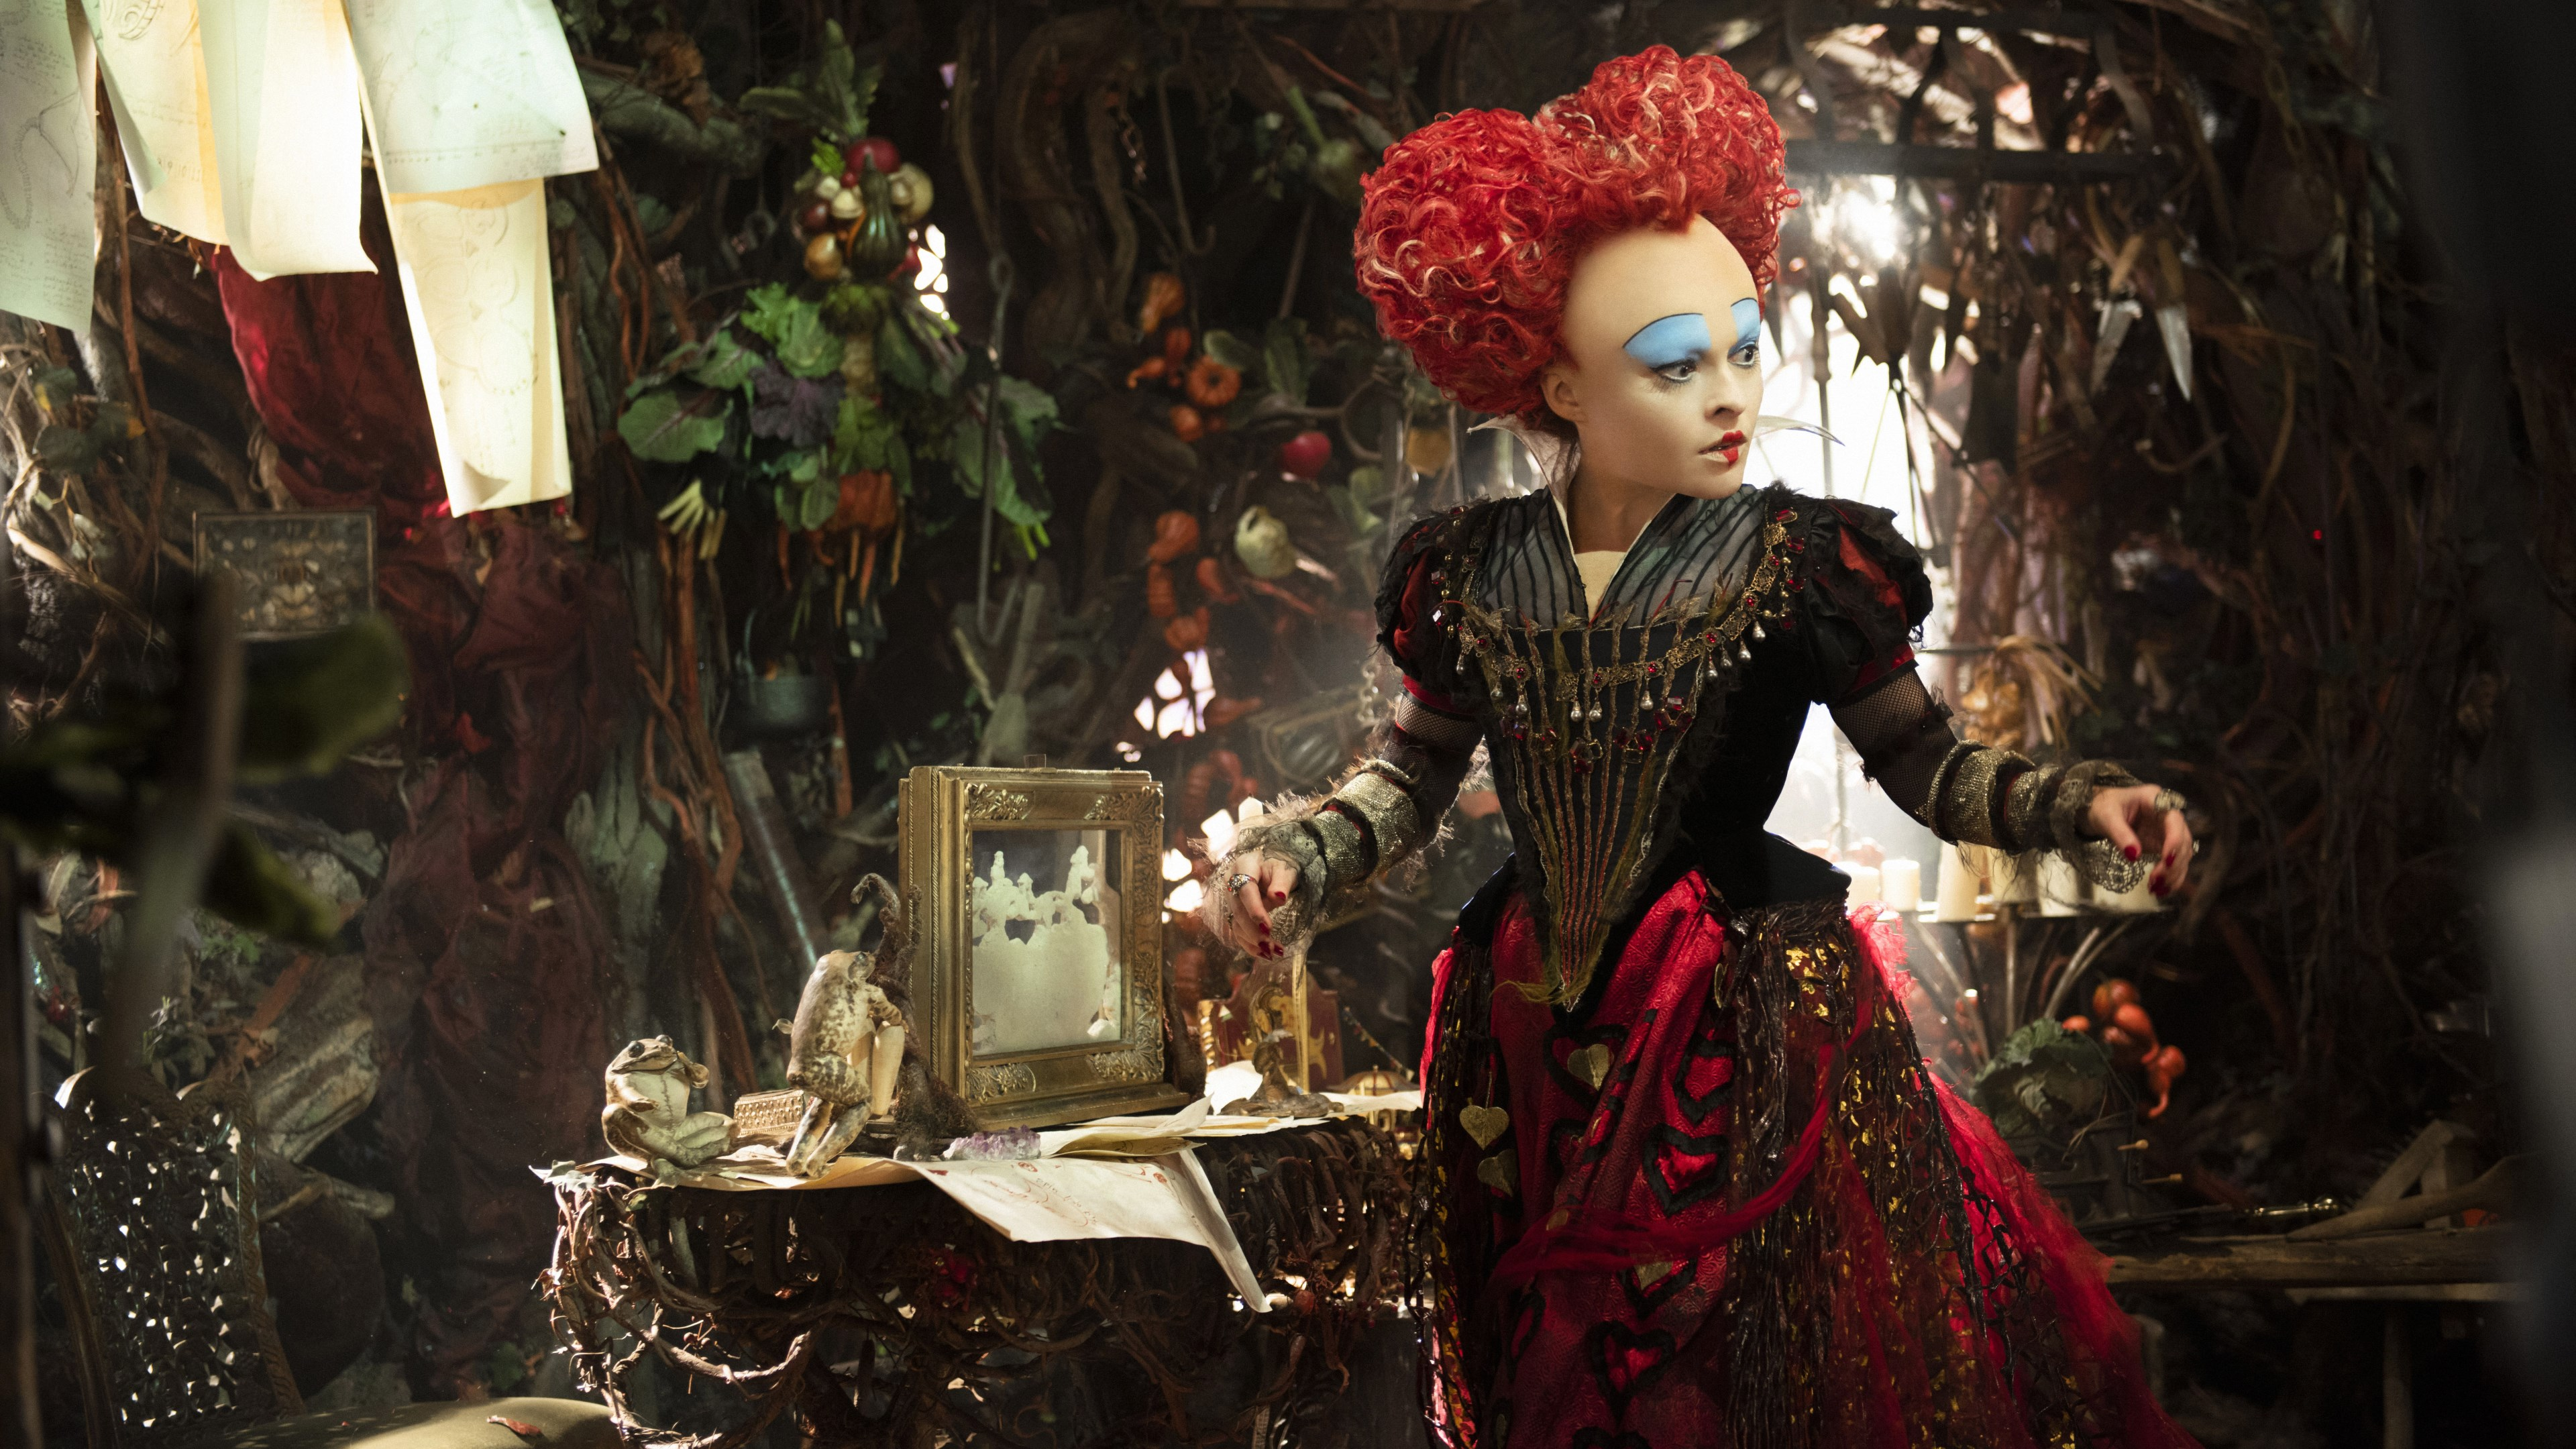 helena bonham carter alice through the looking glass 1536363995 - Helena Bonham Carter Alice Through The Looking Glass - movies wallpapers, alice through the looking glass wallpapers, 2016 movies wallpapers